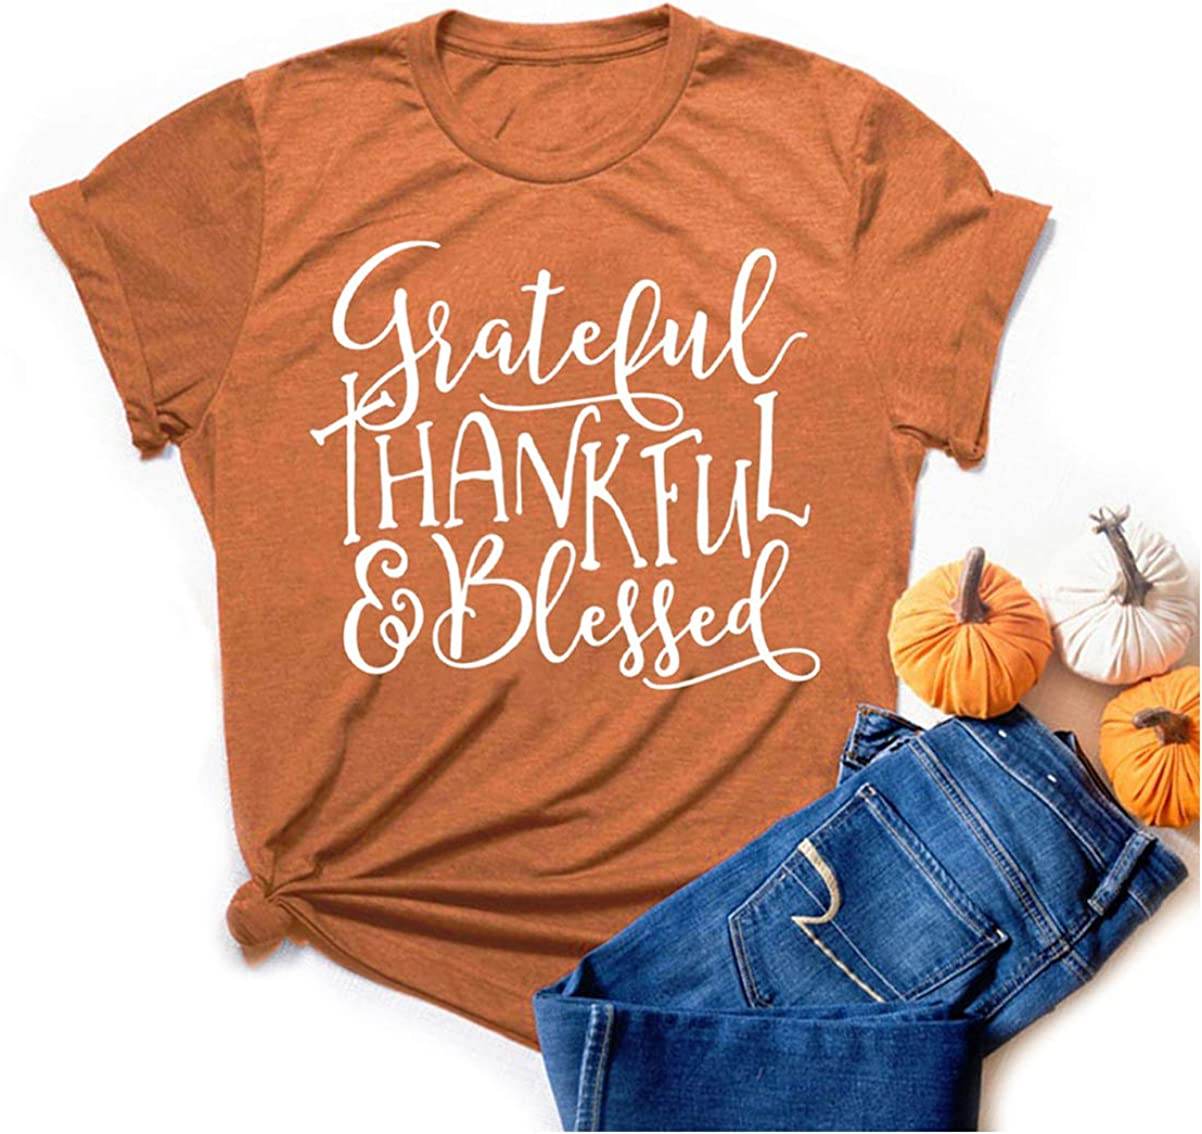 CYNICISMILE Grateful Thankful Blessed Thanksgiving Shirts for Women Short Sleeve Tops Tee